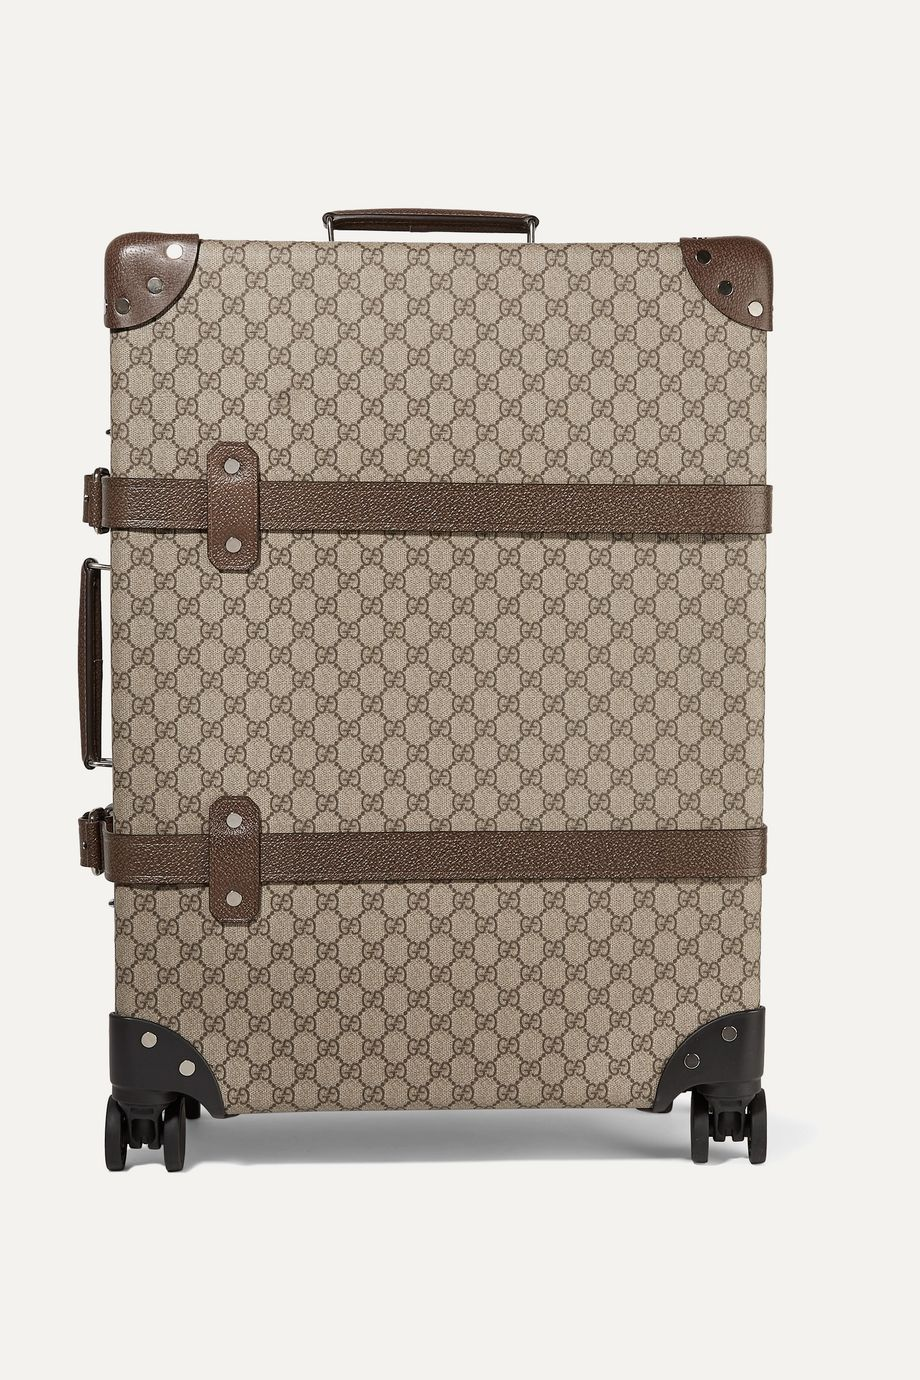 Gucci + Globe-Trotter medium leather-trimmed printed coated-canvas suitcase